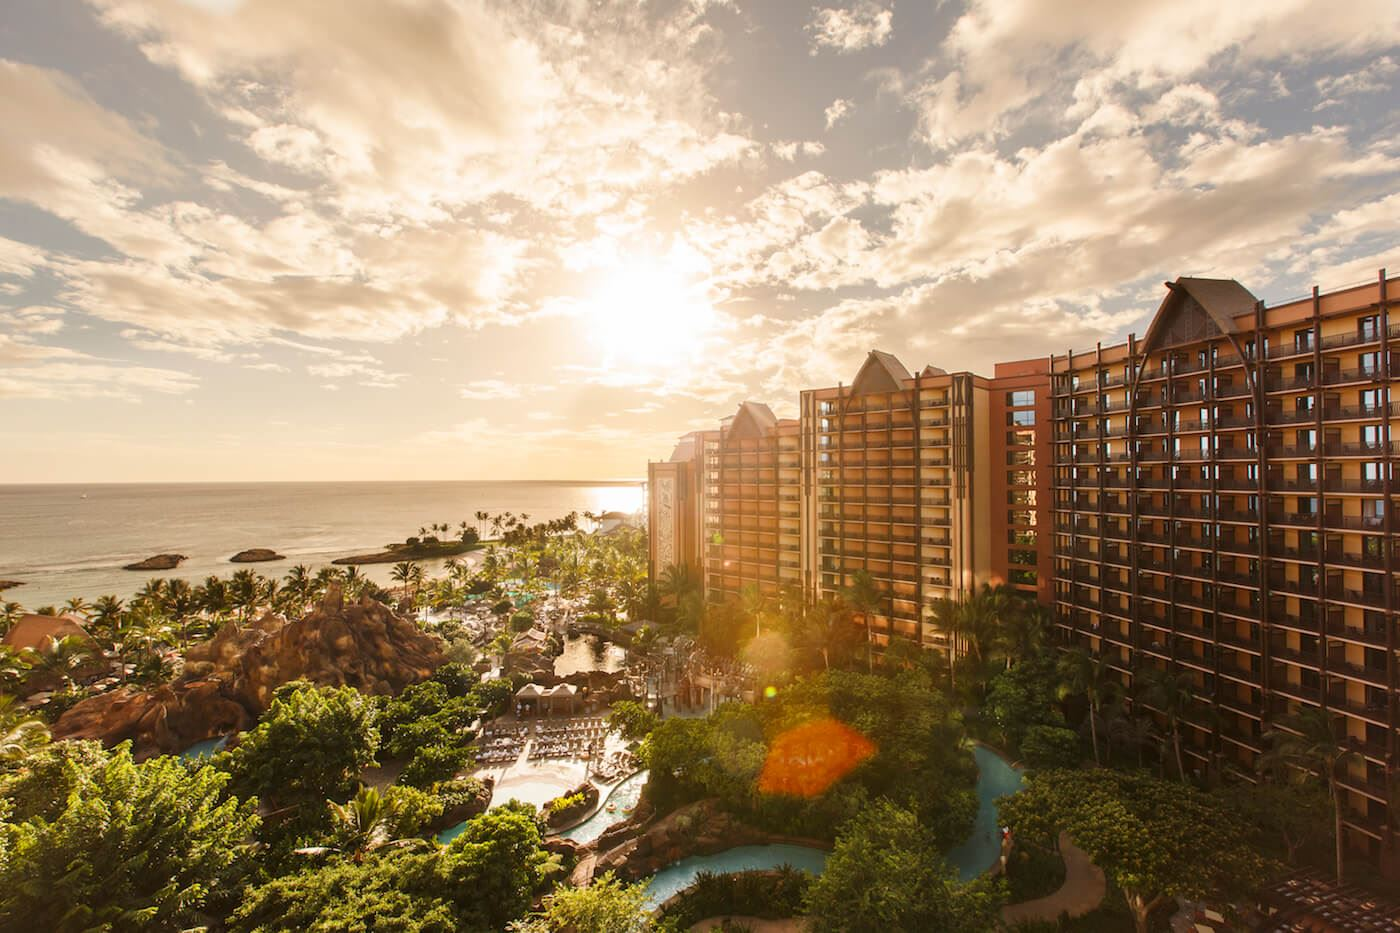 Disney's Aulani Resort to Begin a Phased Reopening in November